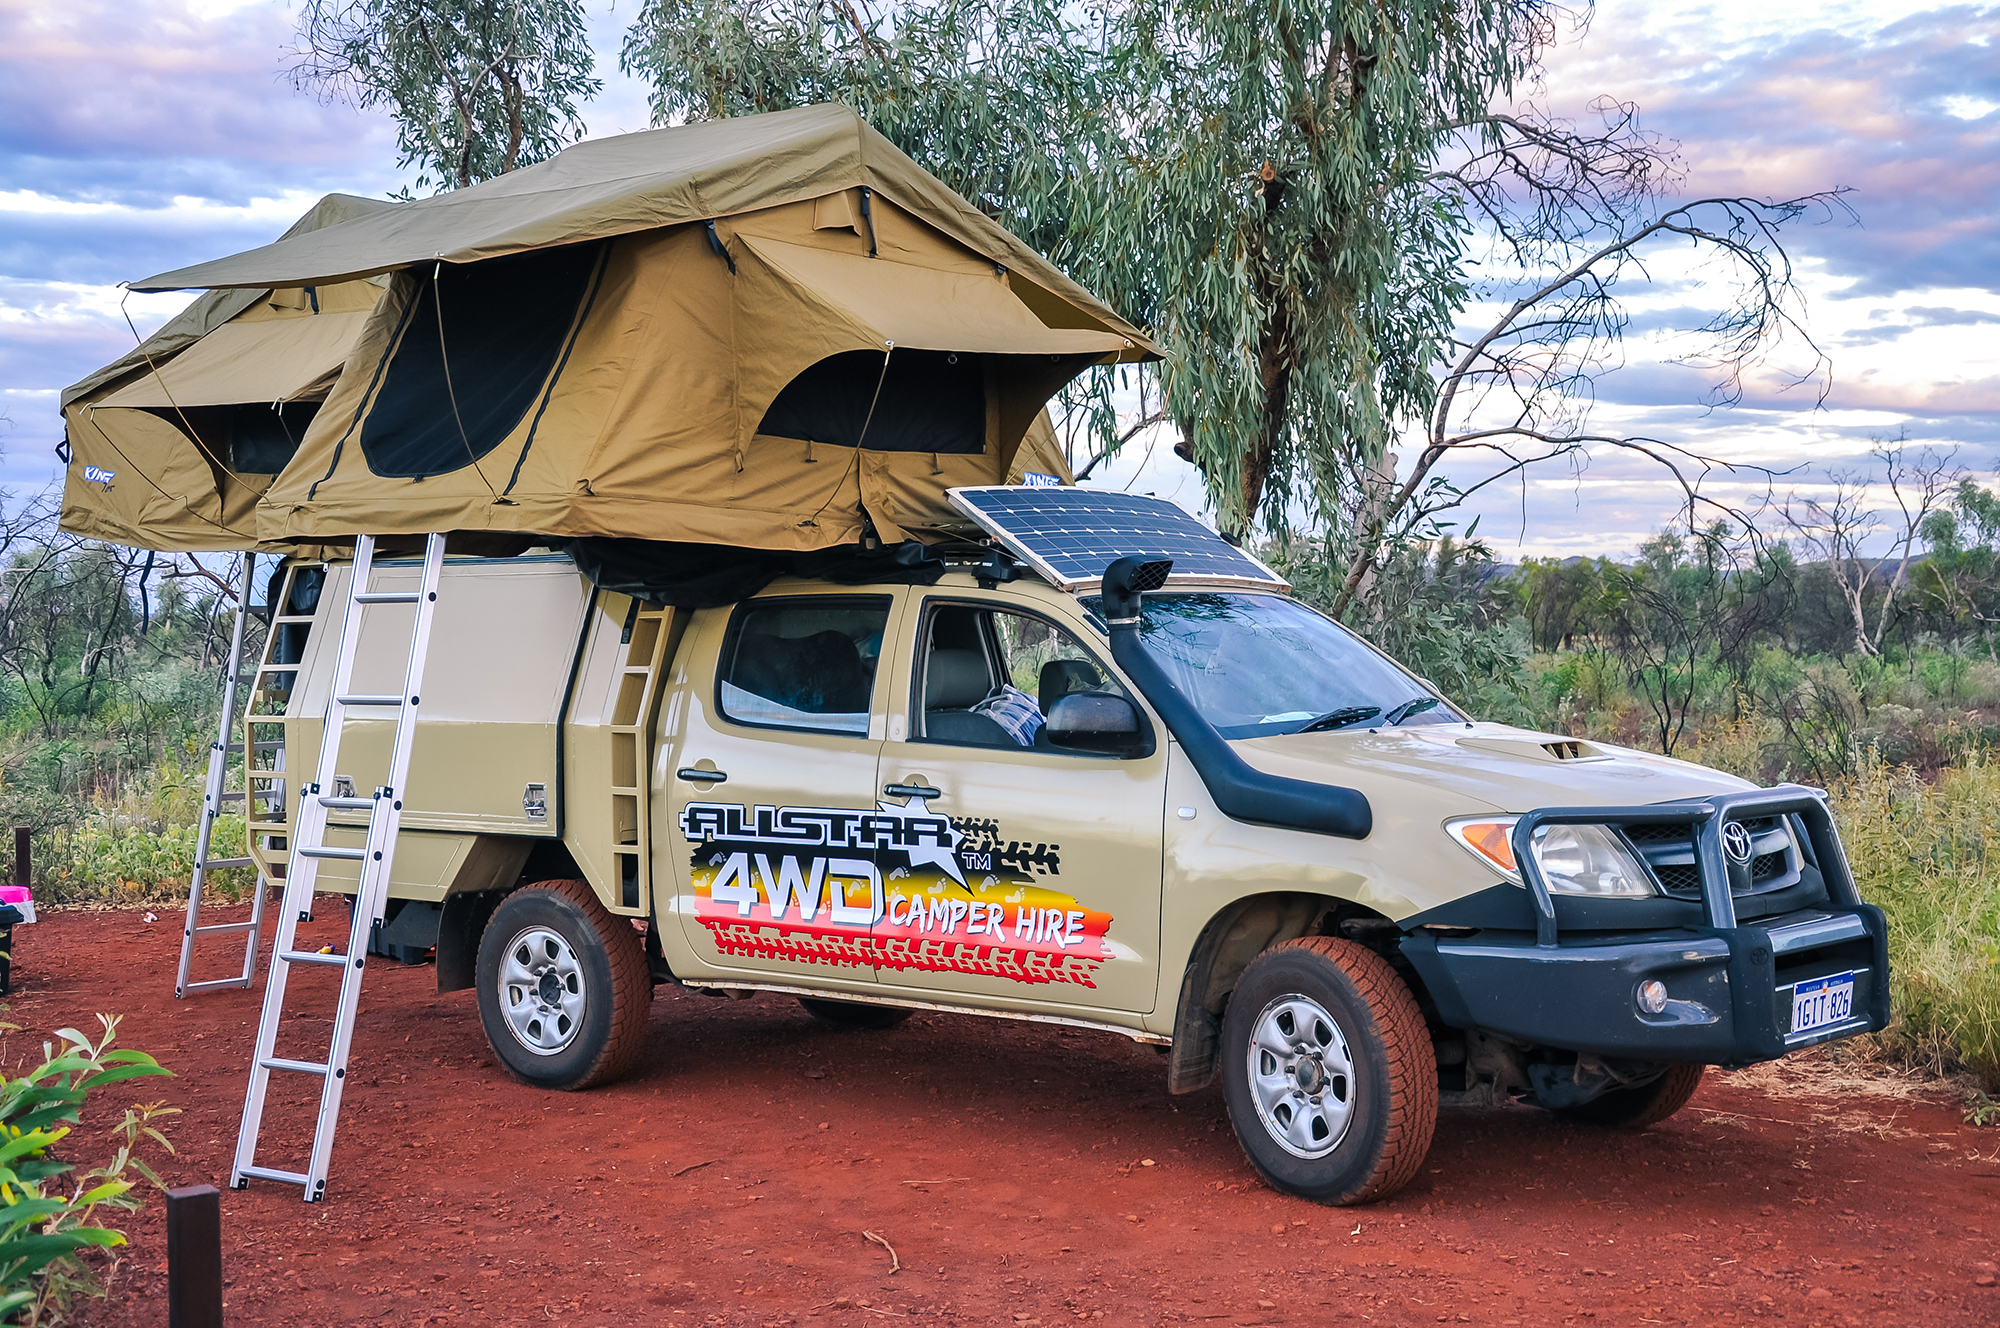 Outback camping Australia